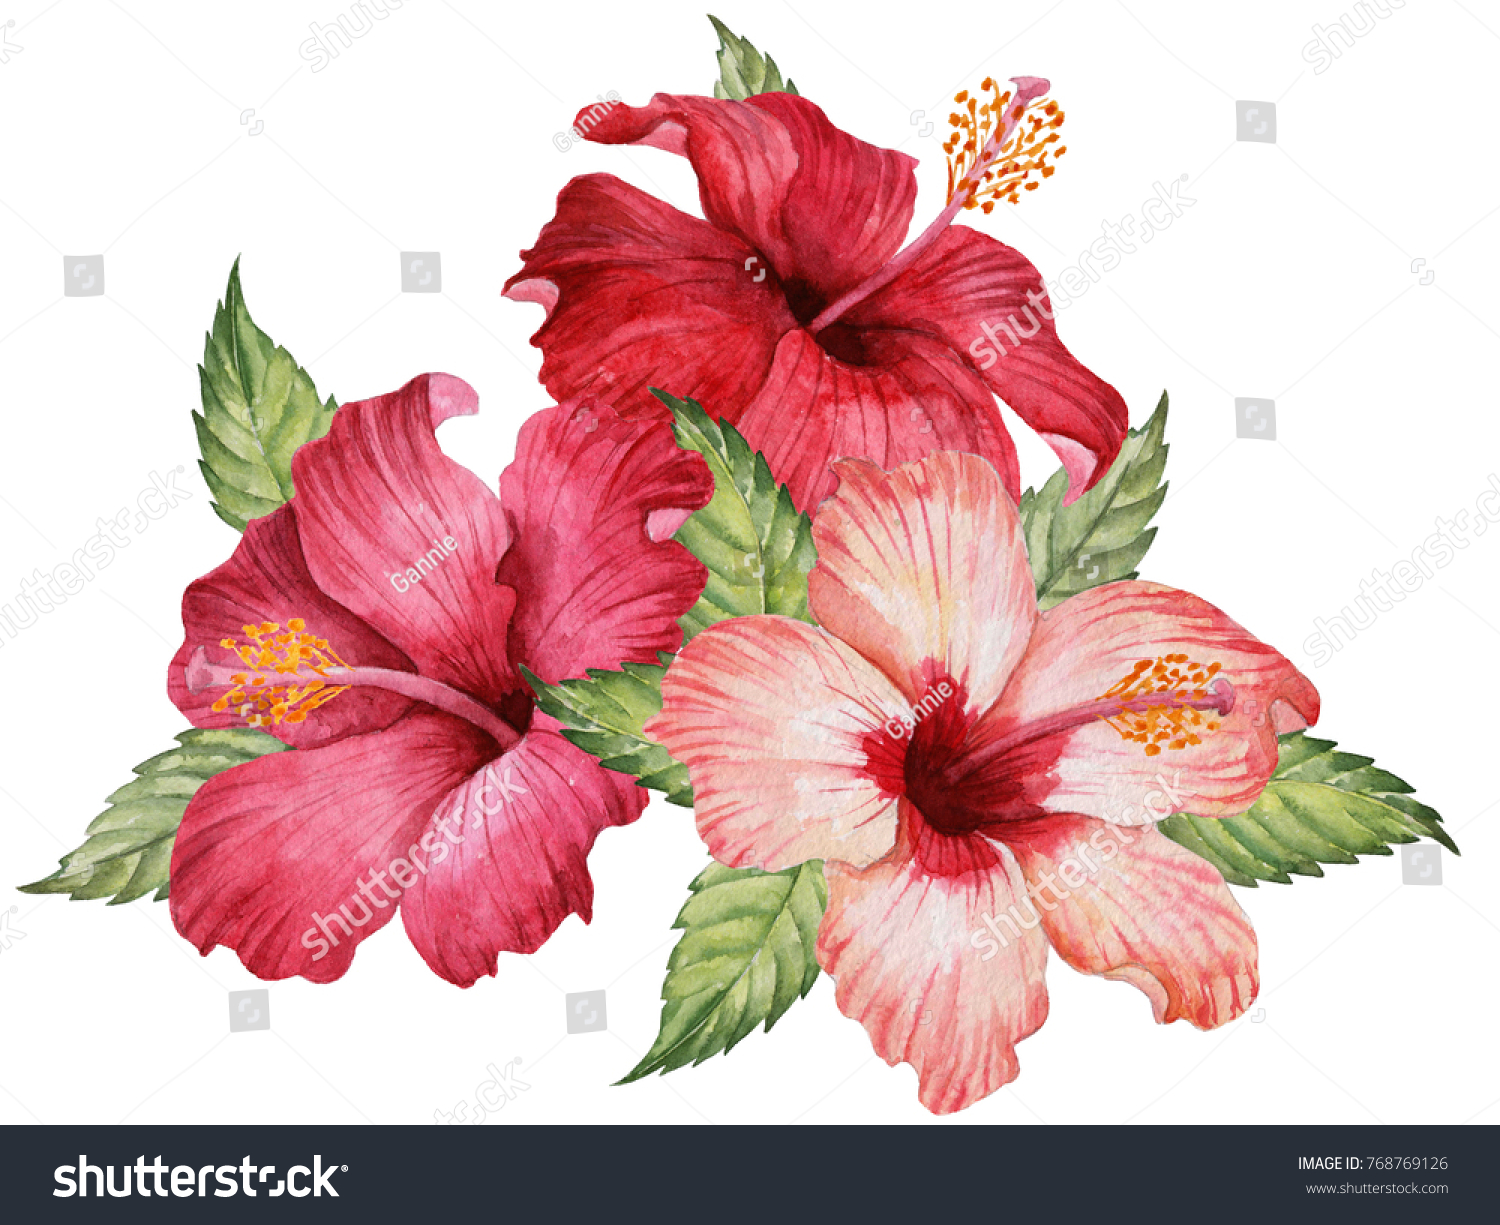 Watercolor composition hibiscus flowers leaves hand stock watercolor composition of hibiscus flowers and leaves hand drawn floral illustration elegant bouquet isolated izmirmasajfo